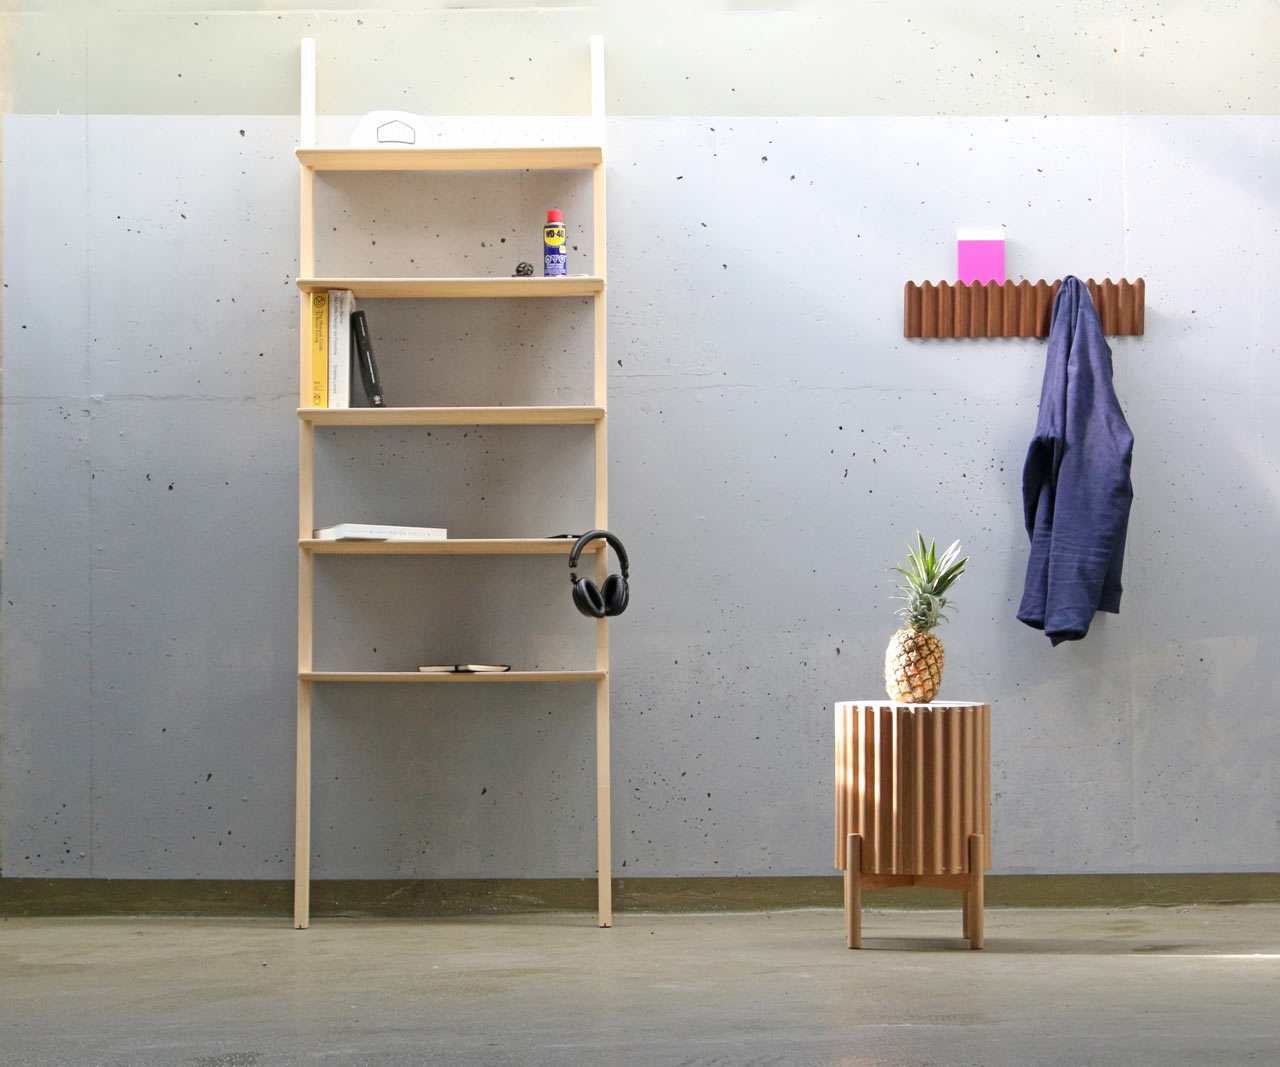 Studio Corelam Launches a Collection for Those Living in Compact Spaces